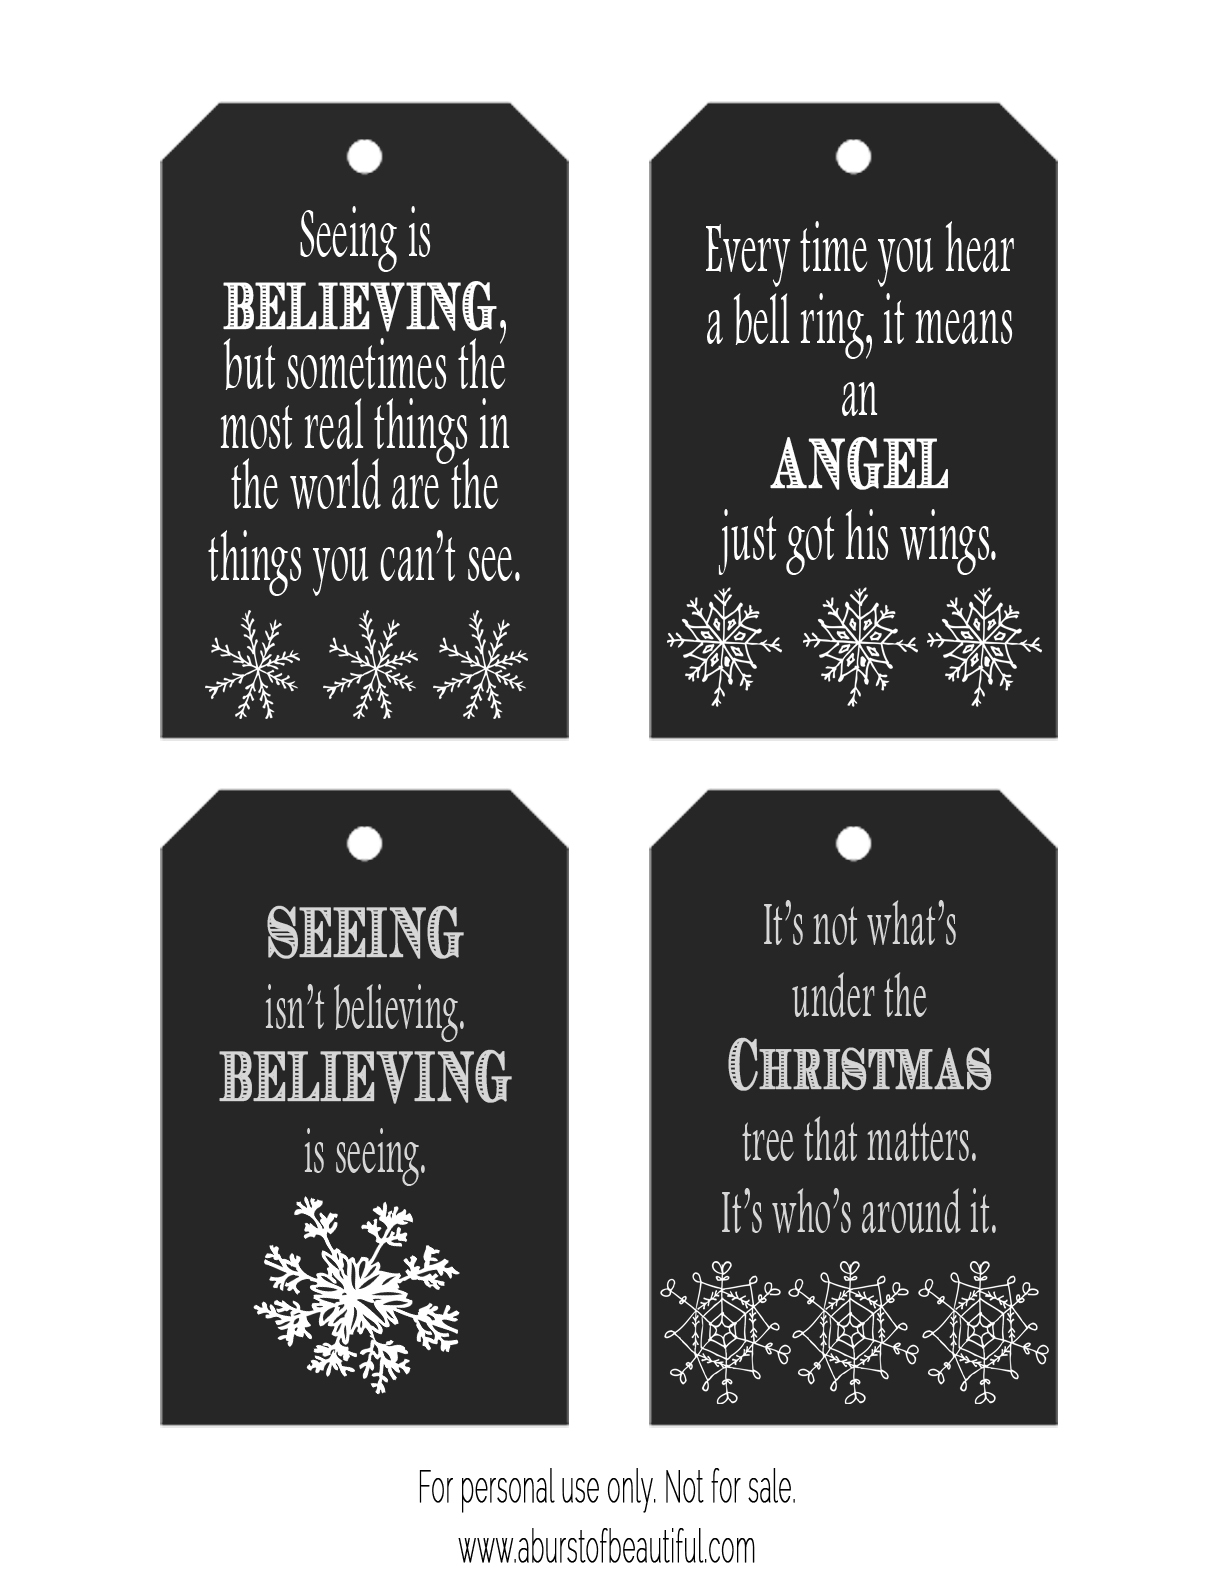 photograph about Printable Christmas Tags Black and White known as Chalkboard Xmas Tags No cost Printable Nick + Alicia